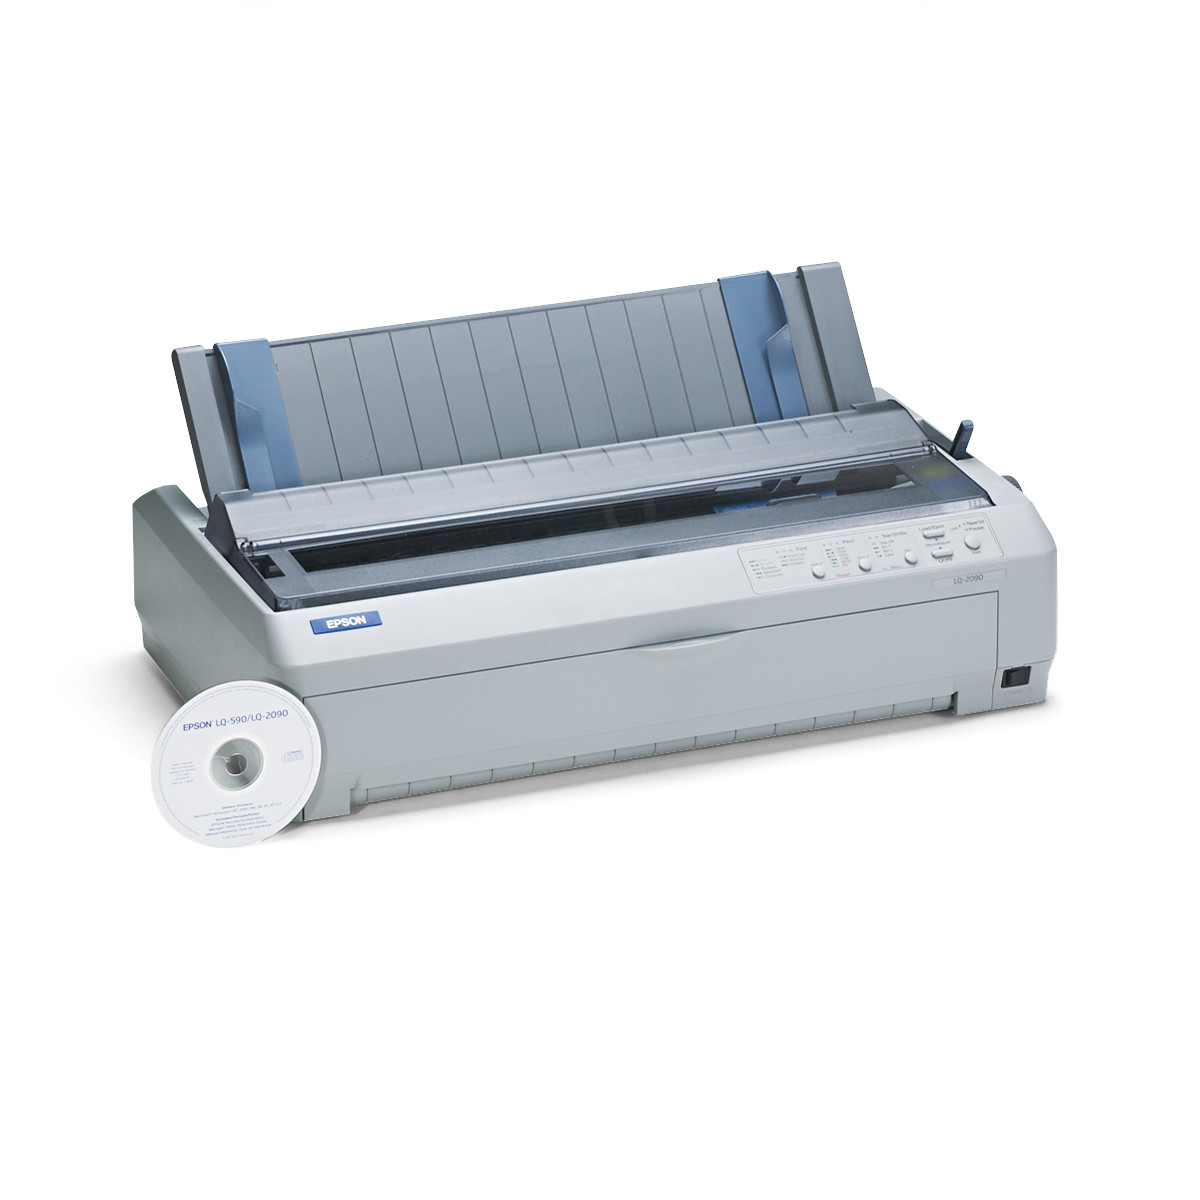 Epson LQ-2090 Wide-Format Dot Matrix Printer by Epson